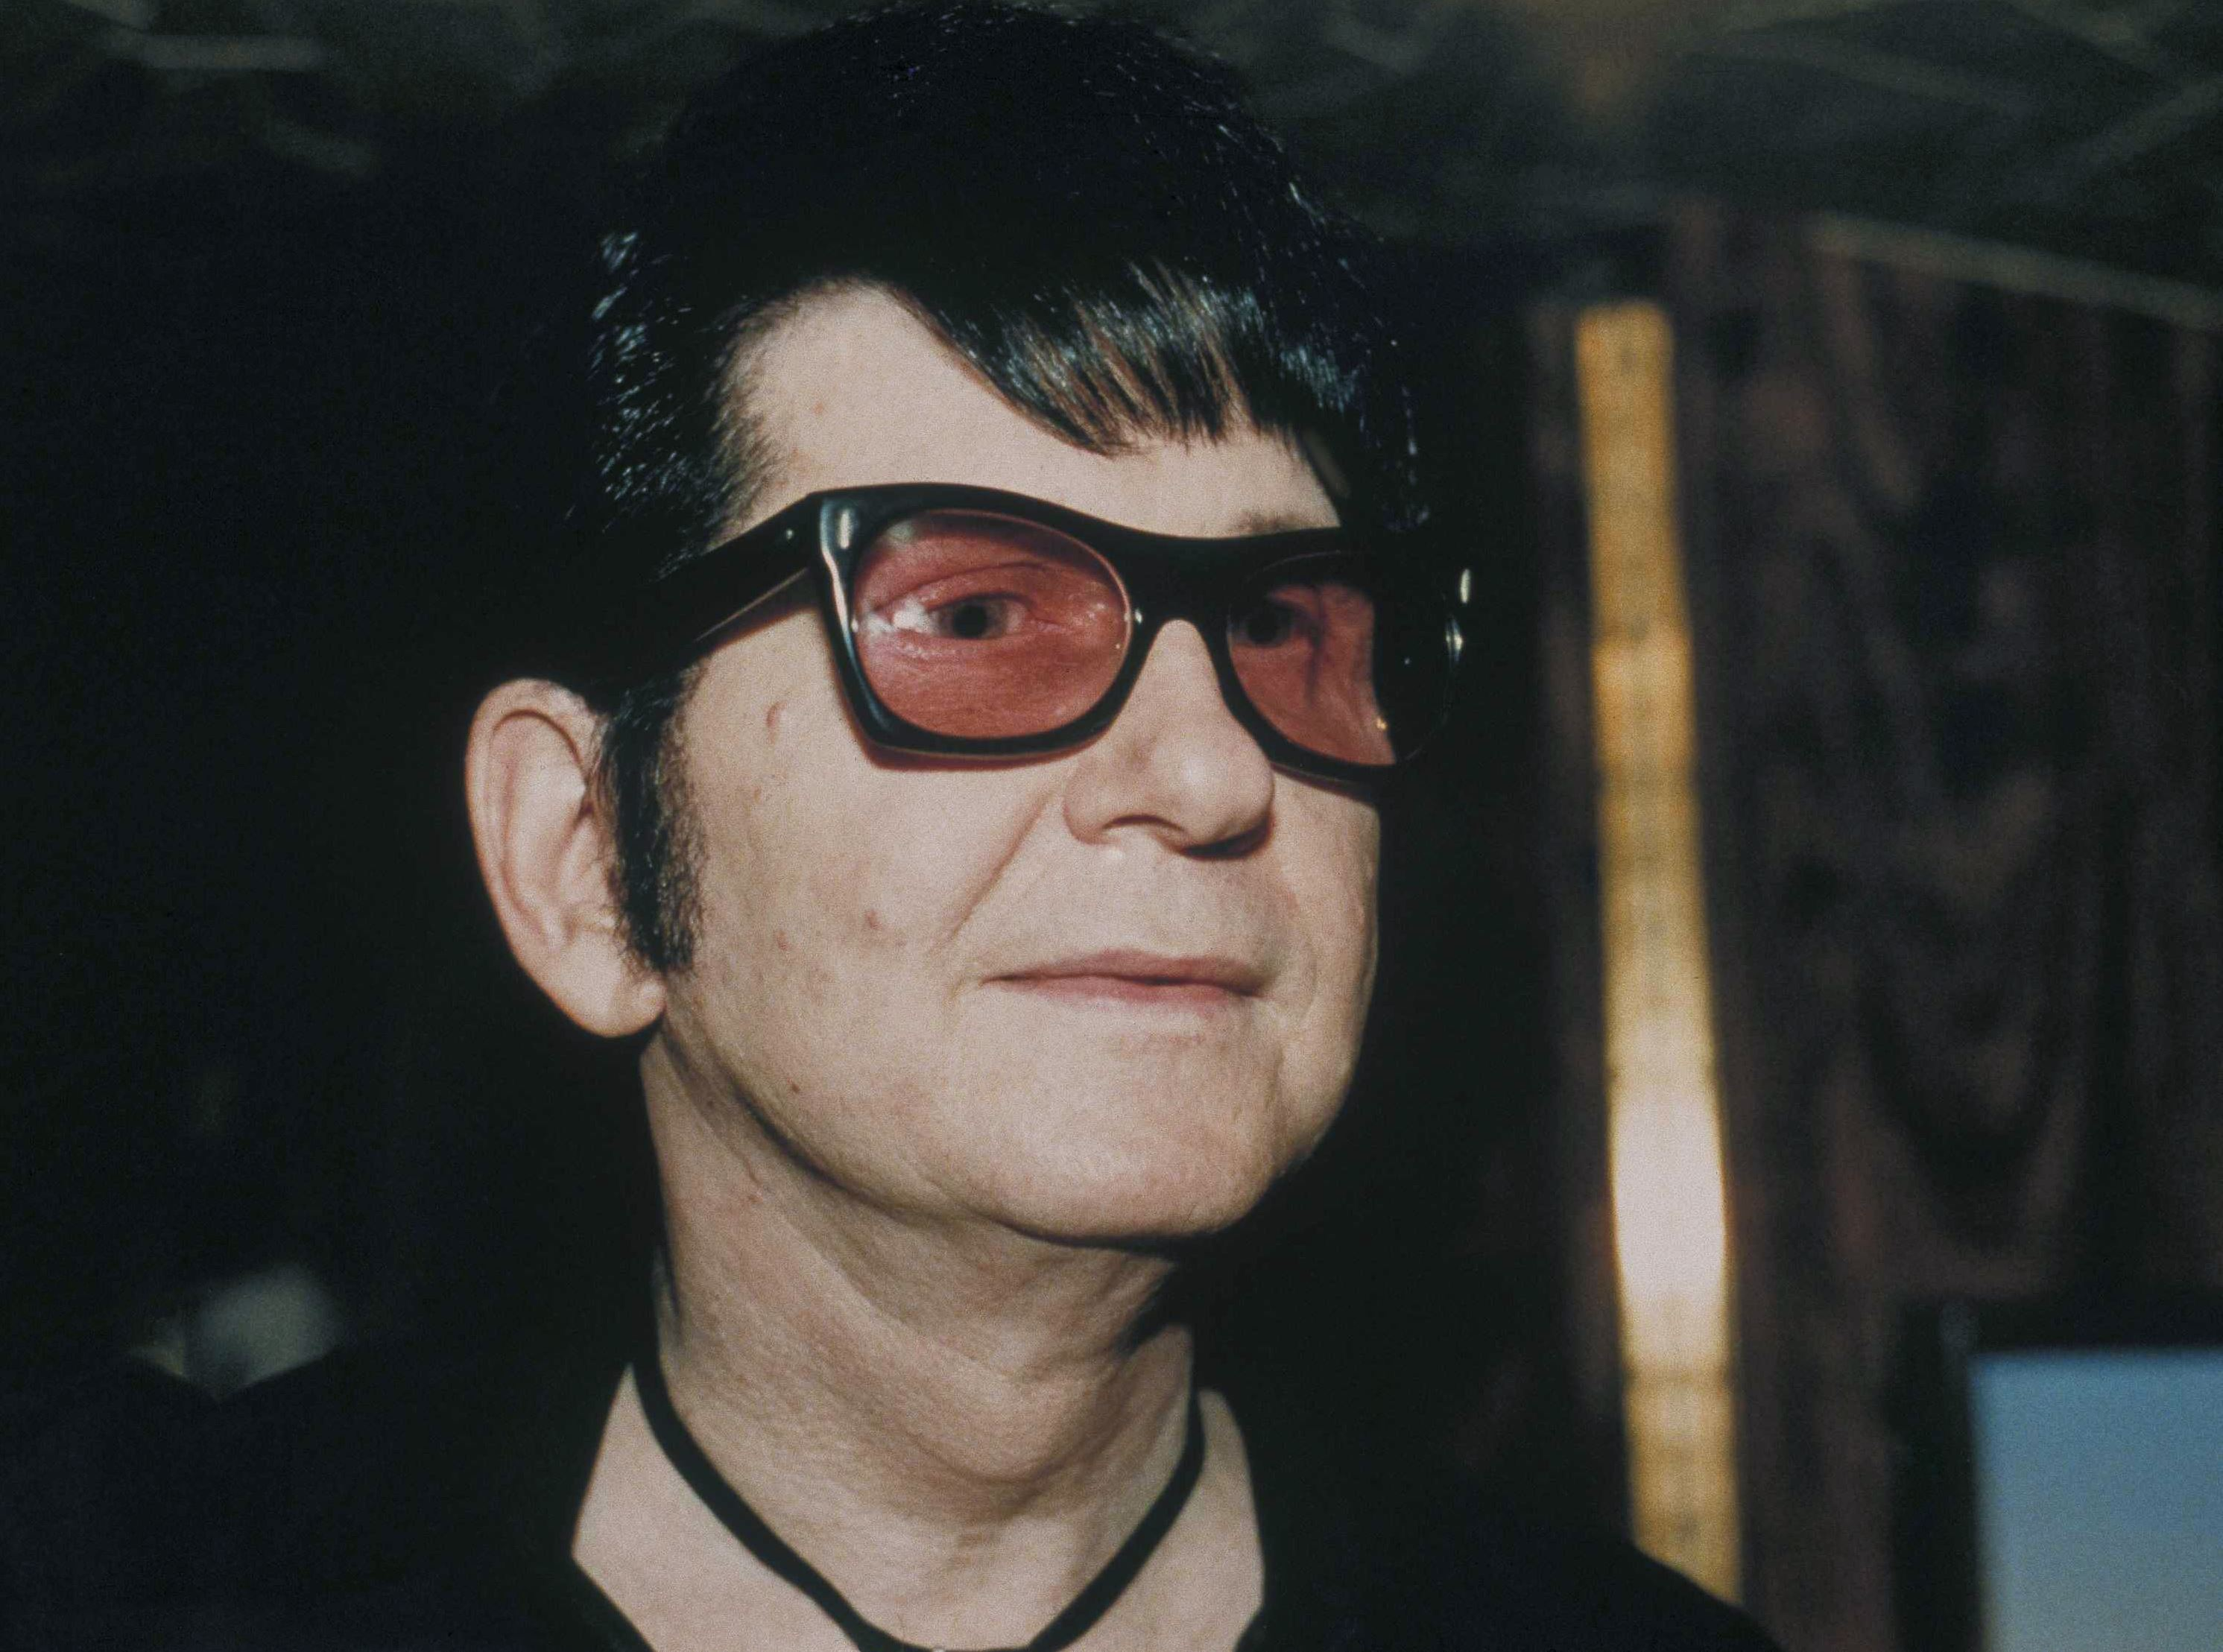 Roy orbison in a 1988 photo singer and guitarist roy orbison in 1988